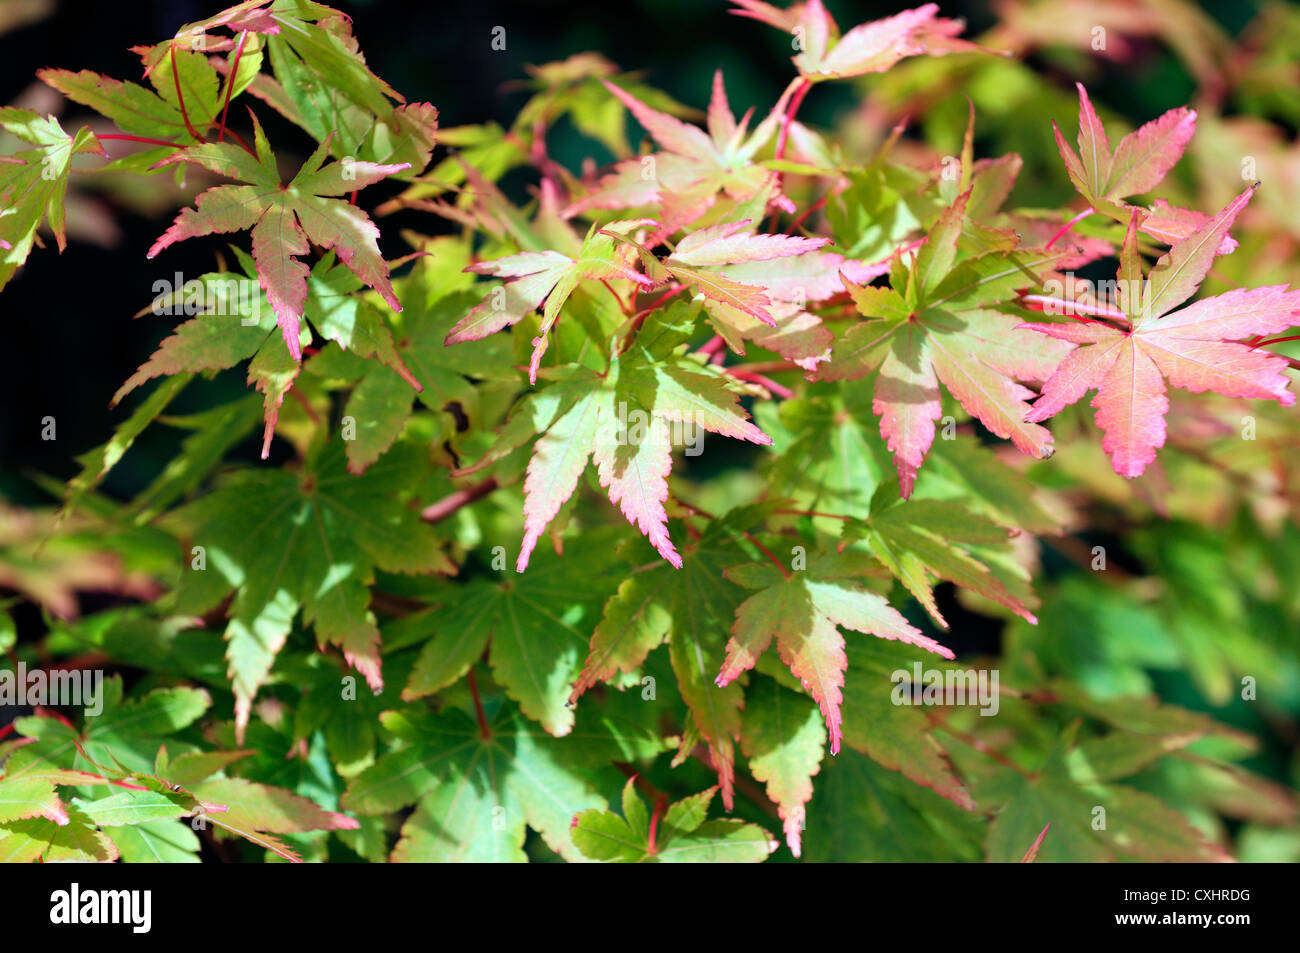 acer palmatum rising sun closeup selective focus plant portraits japanese maples pink green leaves foliage tipped - Stock Image